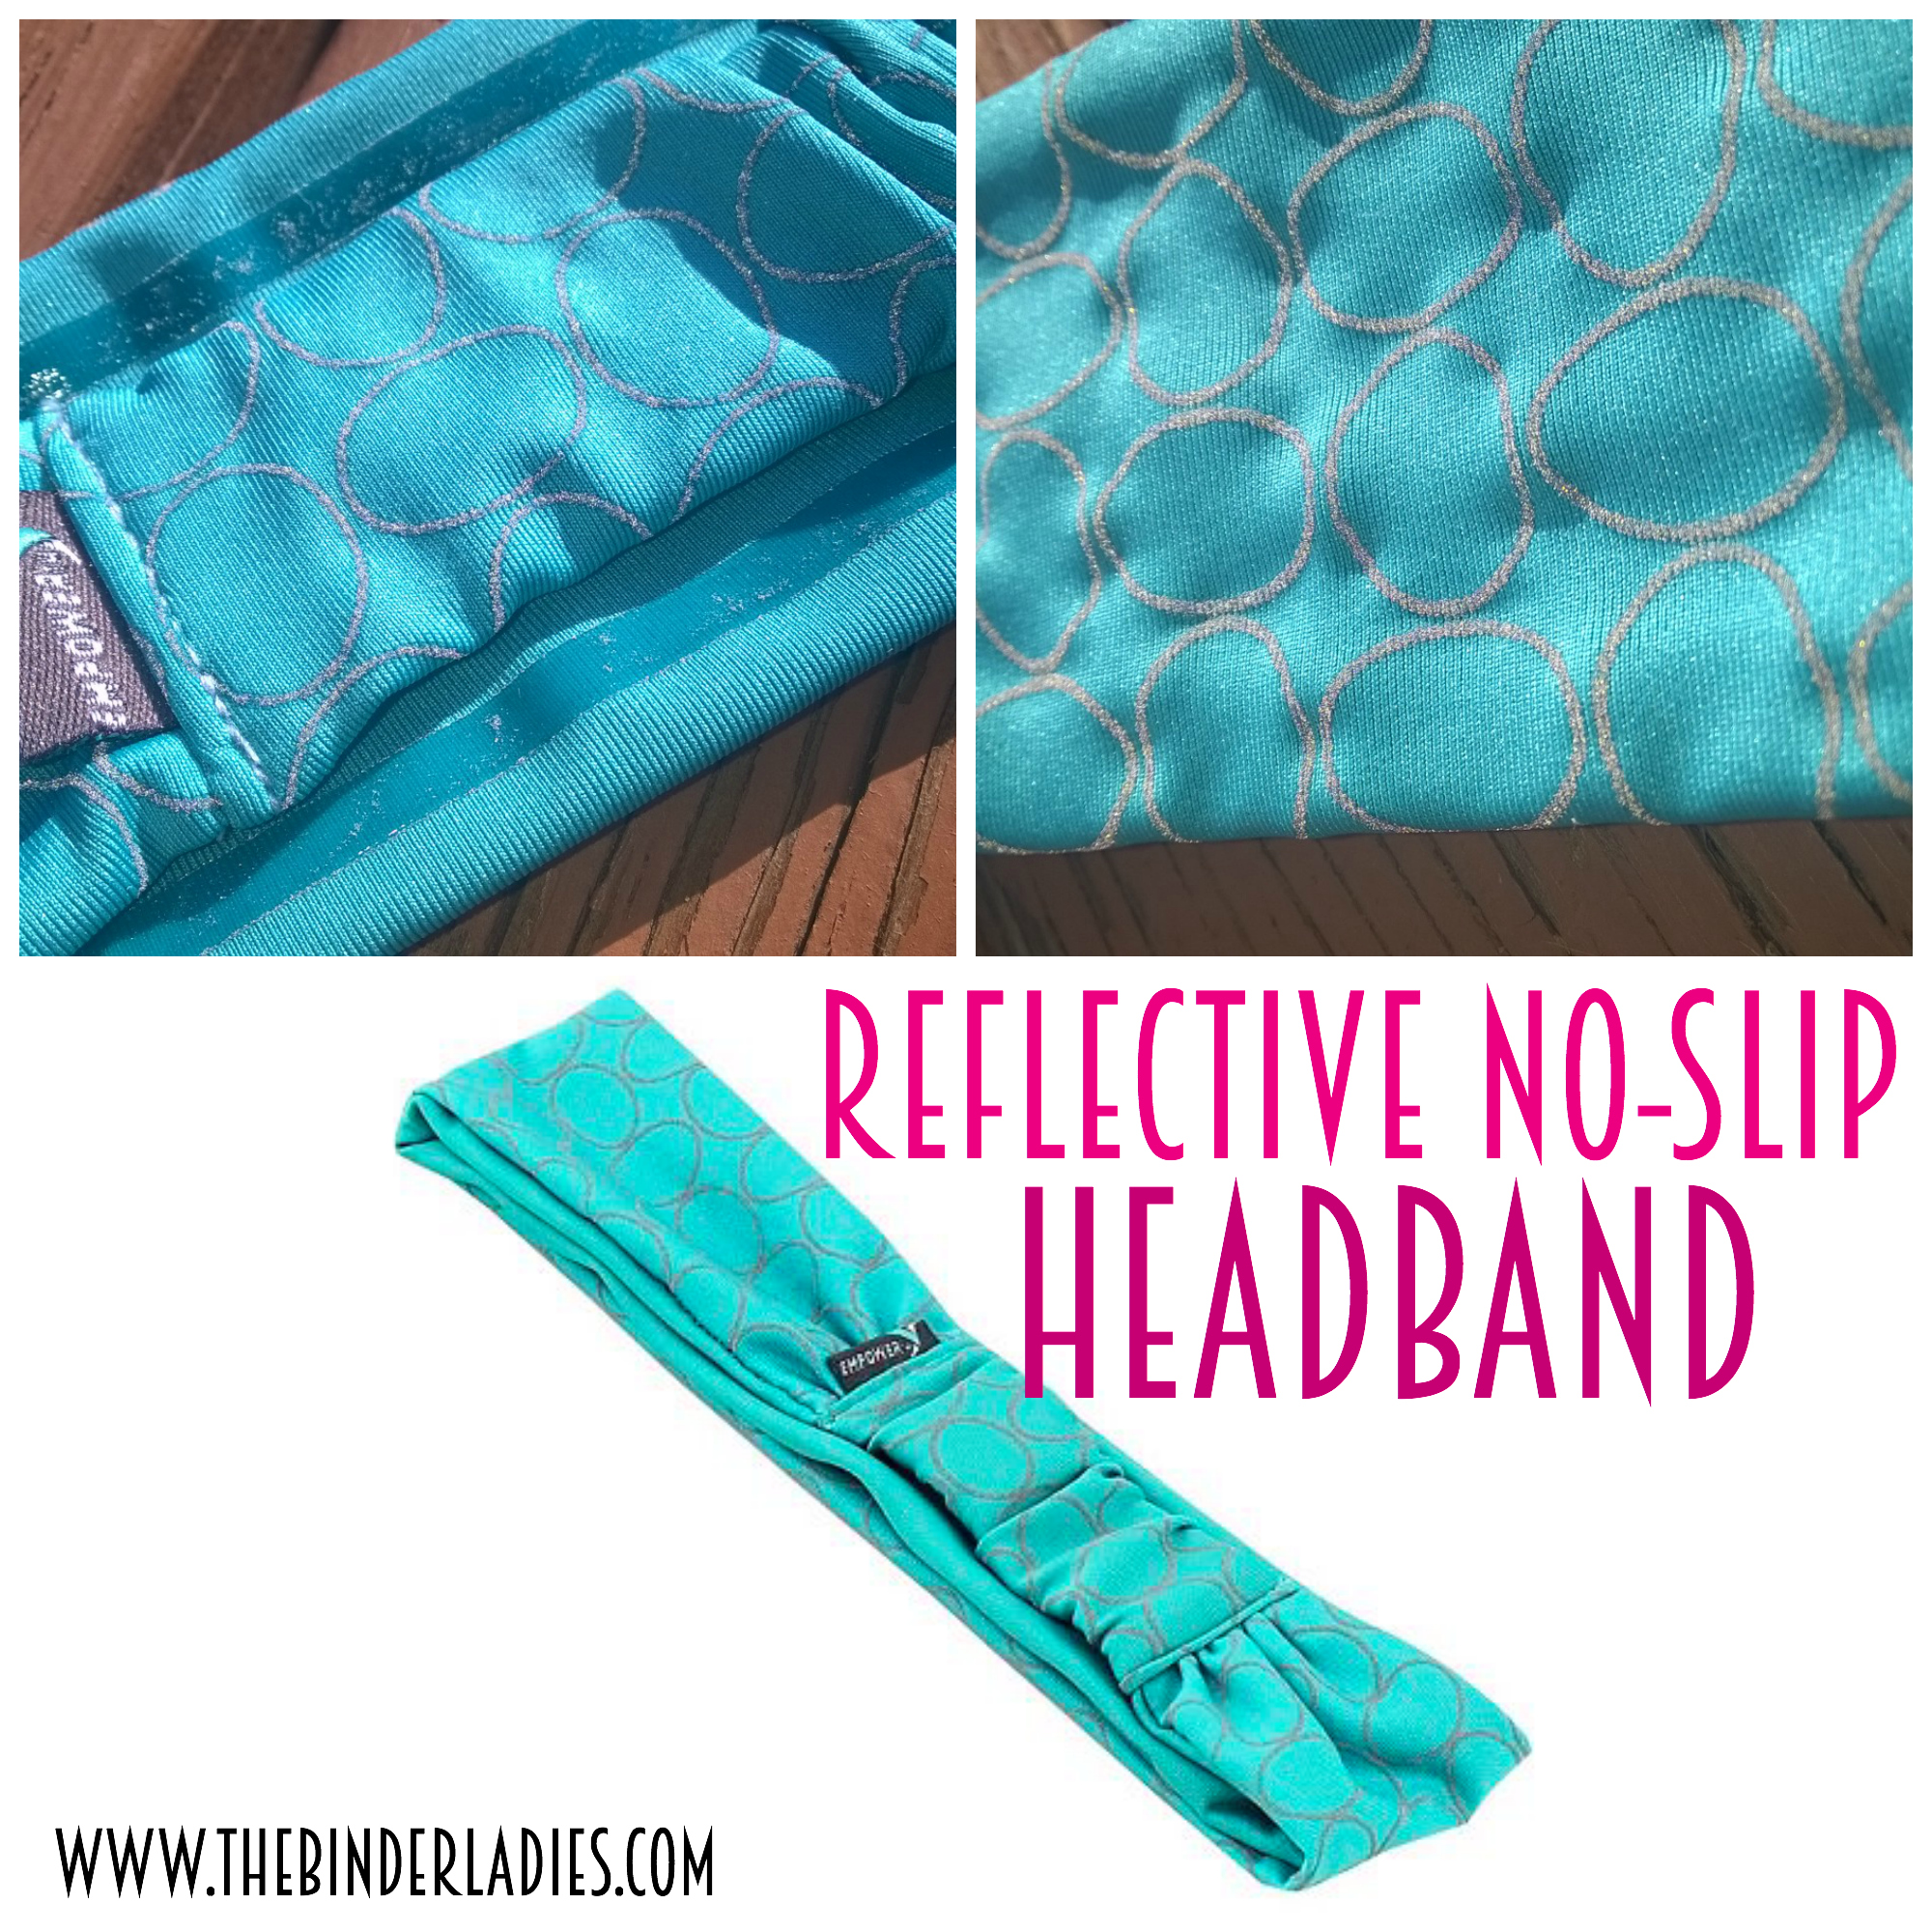 Reflective No-Slip Headband from Empower Fitness - workout products made for women!